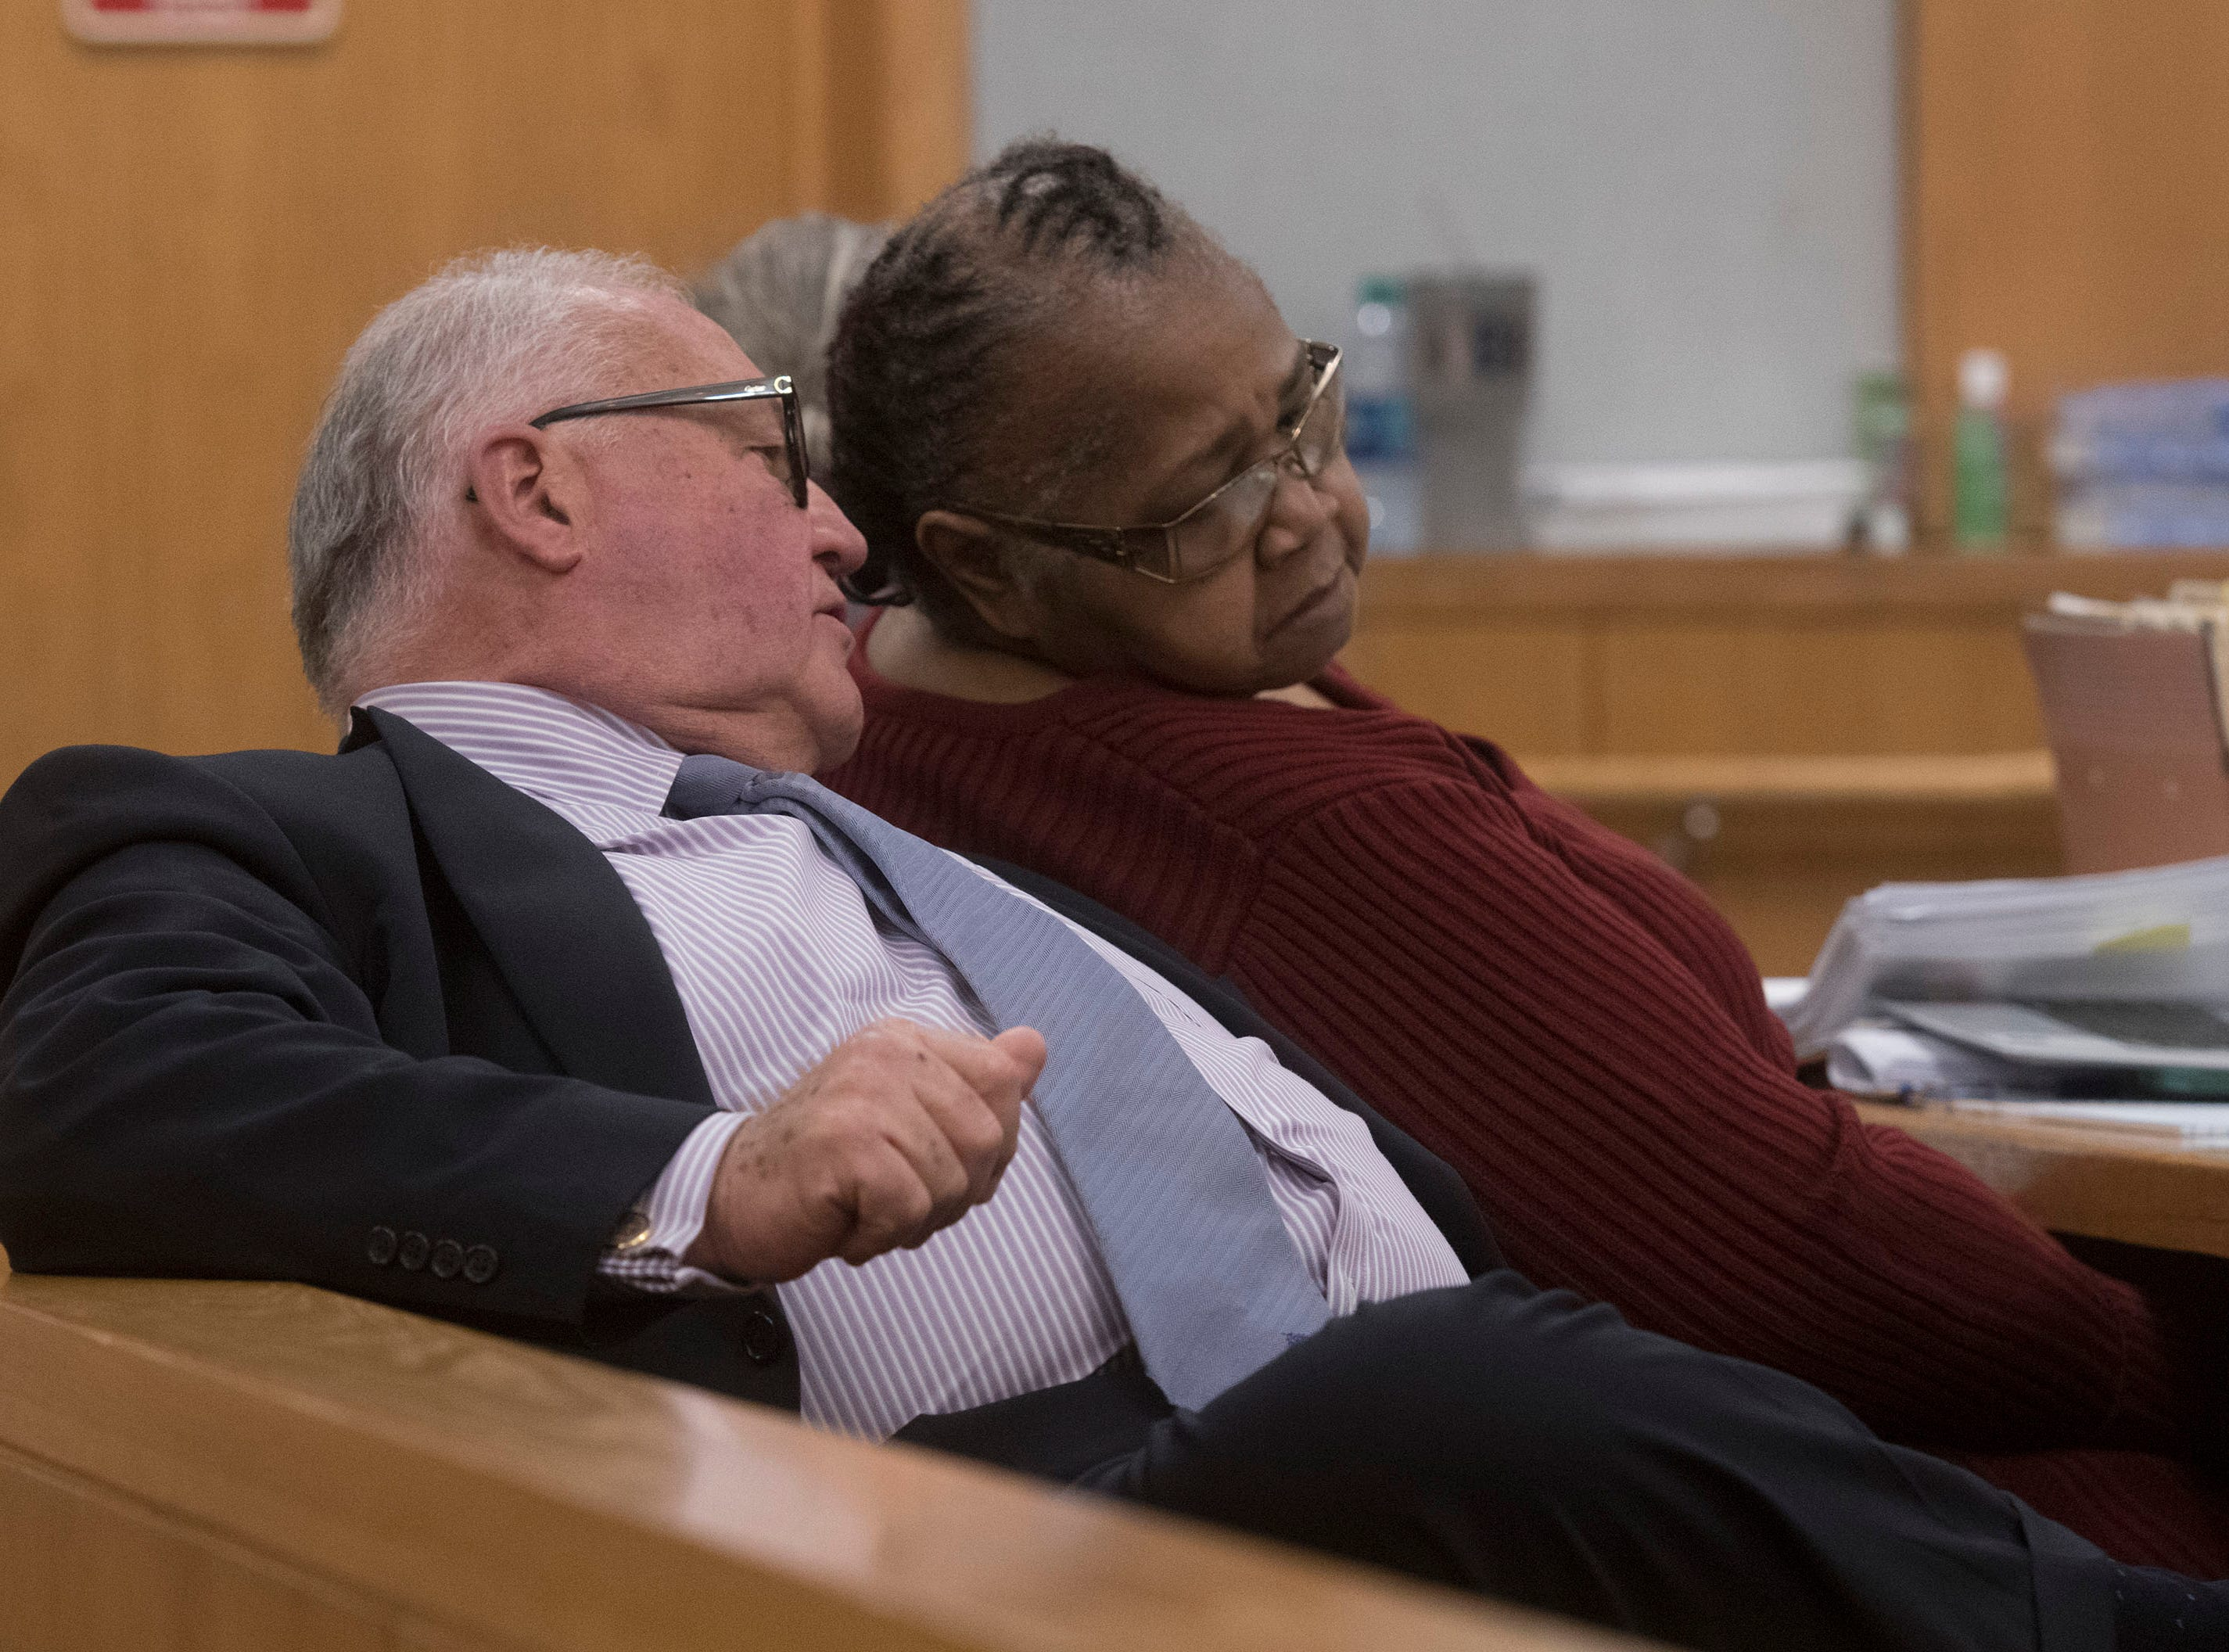 Veronica Green Posey, 66, consults with her attorney, Michael J. Griffith, during court on Thursday, March 14, 2019. Posey is on trial for the death of her 9-year-old cousin Dericka Lindsay.